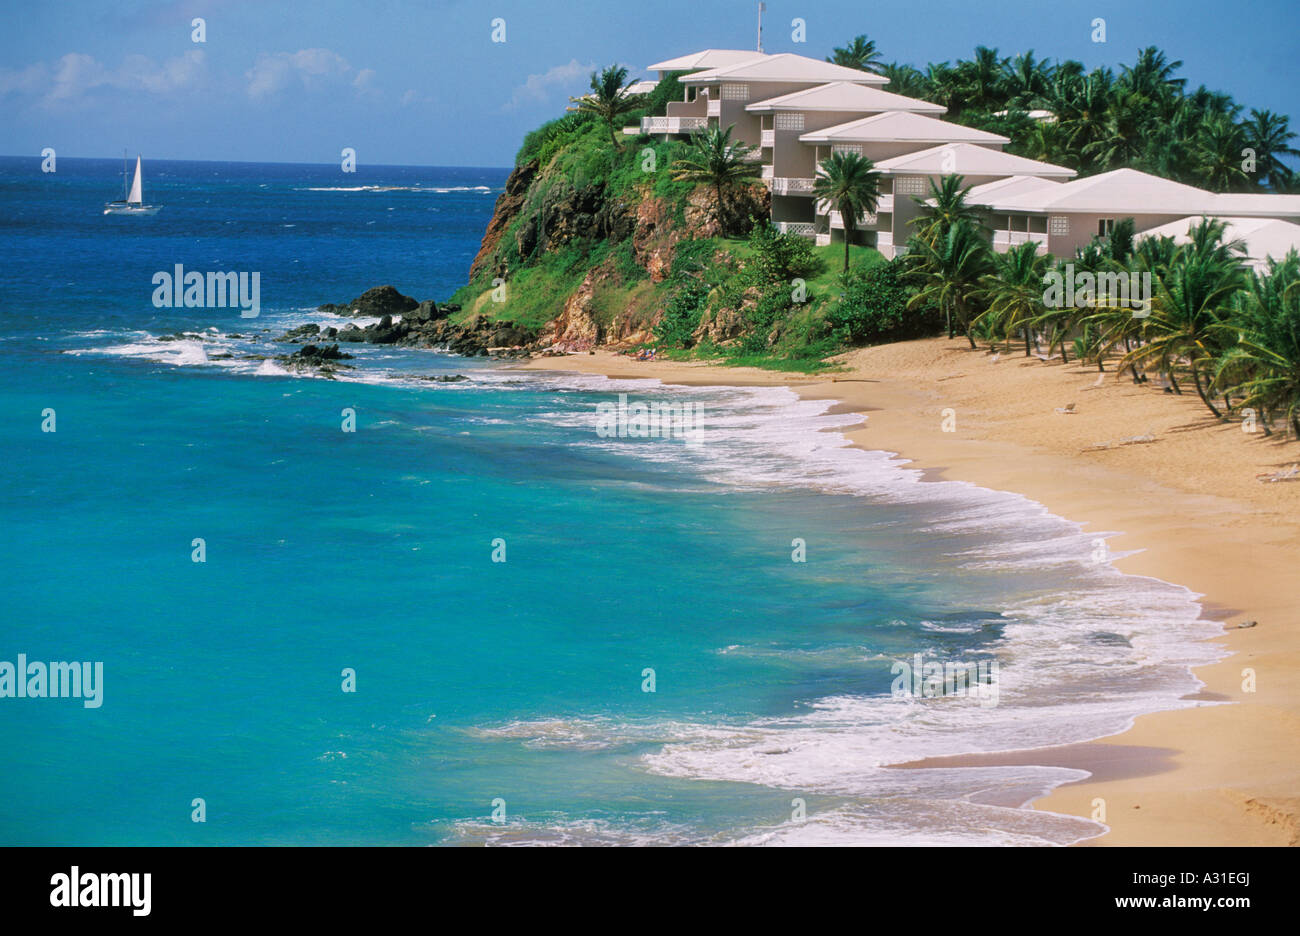 The beach at Curtain Bluff Hotel Resort in the south of Antigua ...